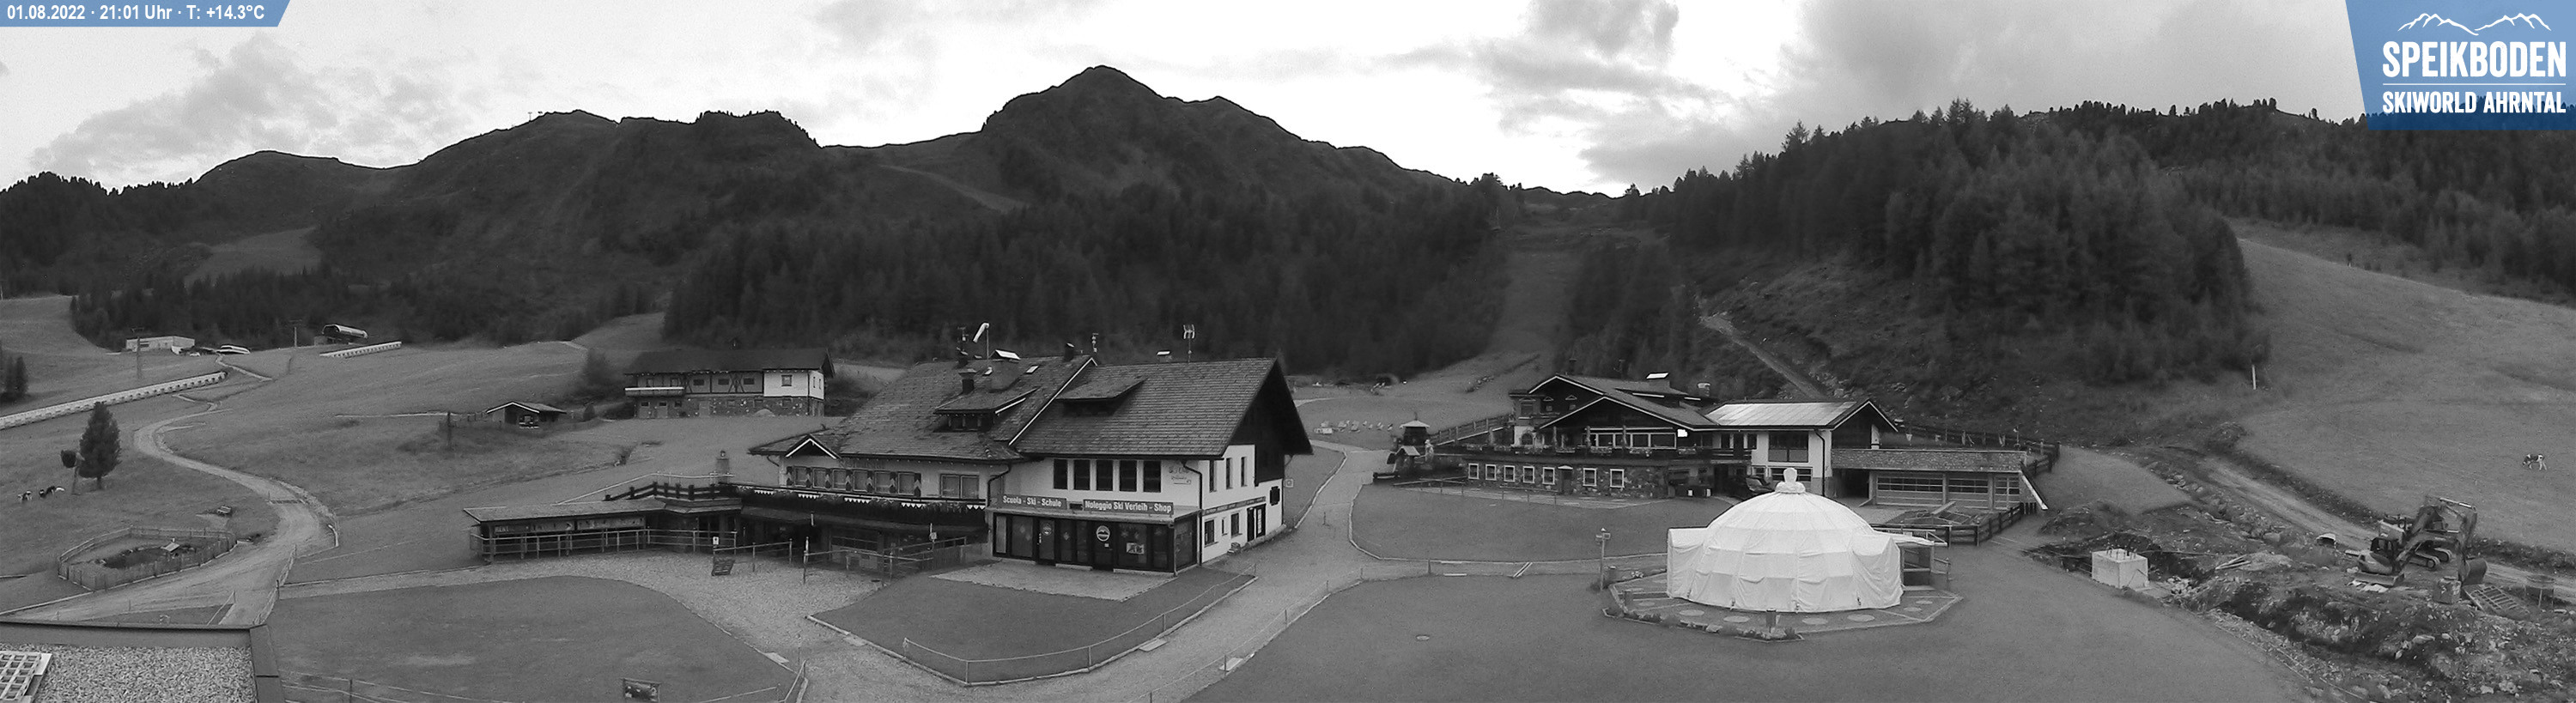 Webcam of the Speikboden in Valle Aurina